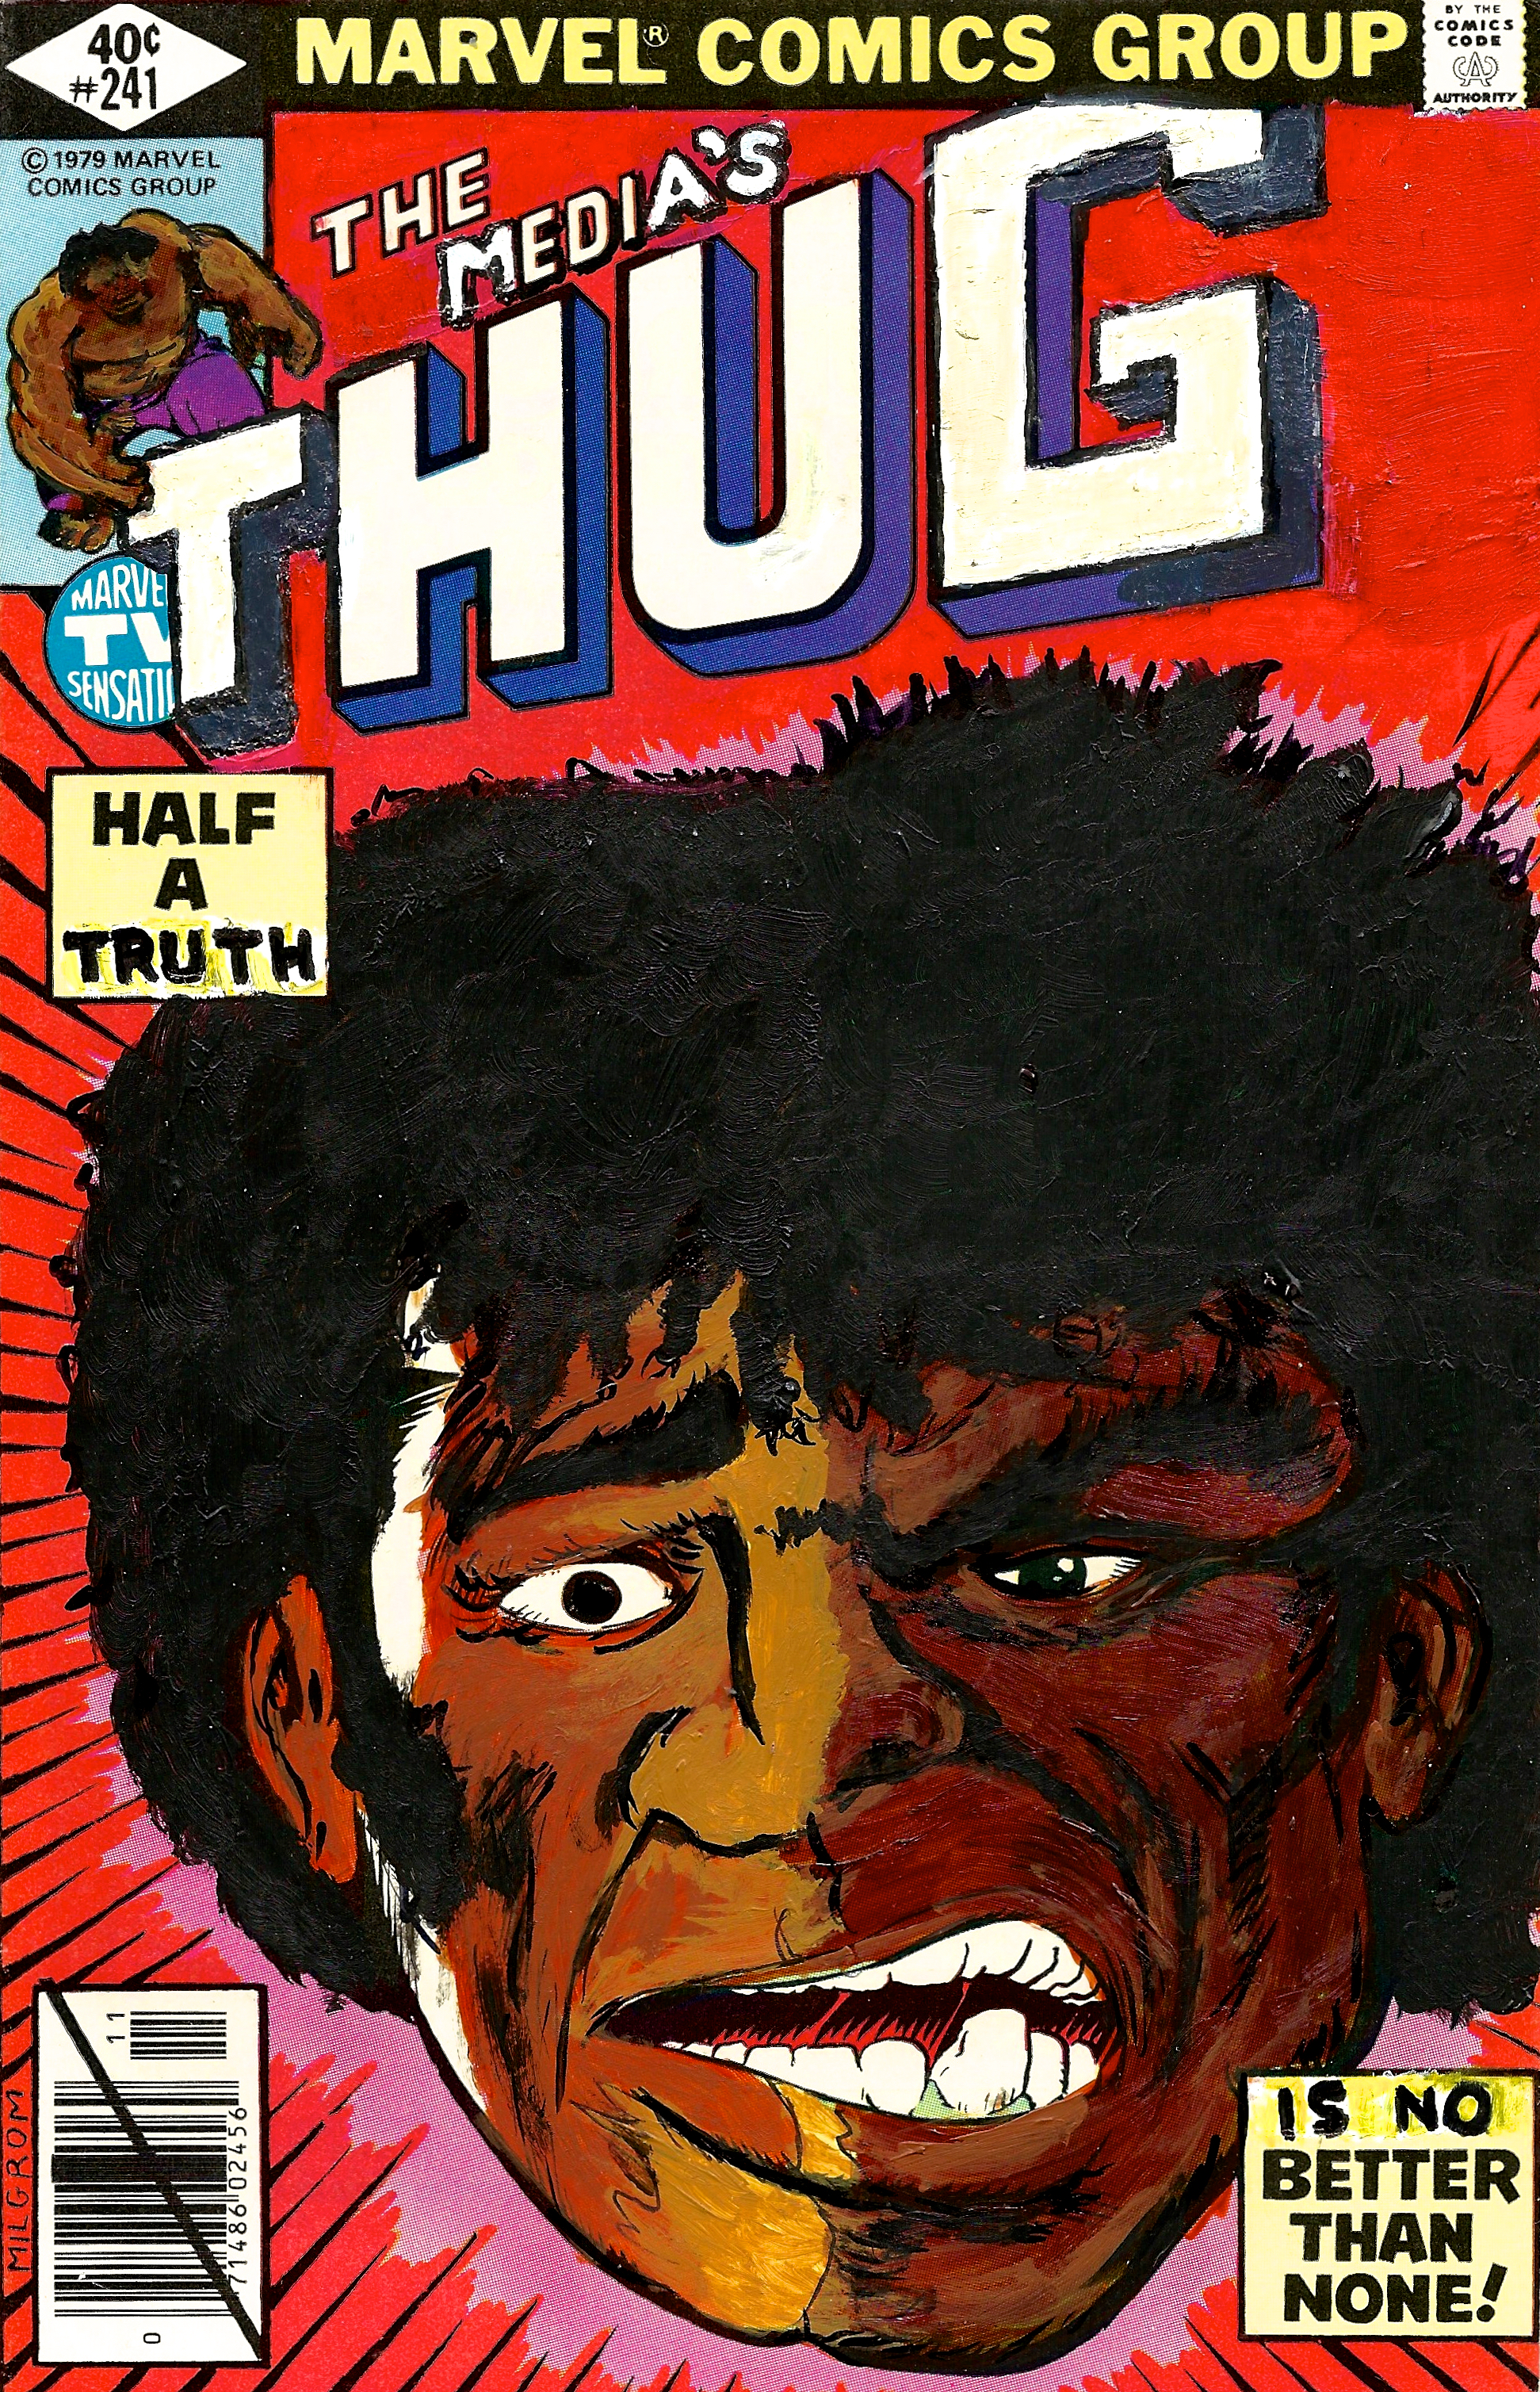 Kumasi J. Barnett The Media's Thug #241 Half a Truth…, 2015 Acrylic, marker, pen and oil marker on comic book 9 3/4h x 6 1/4w inches